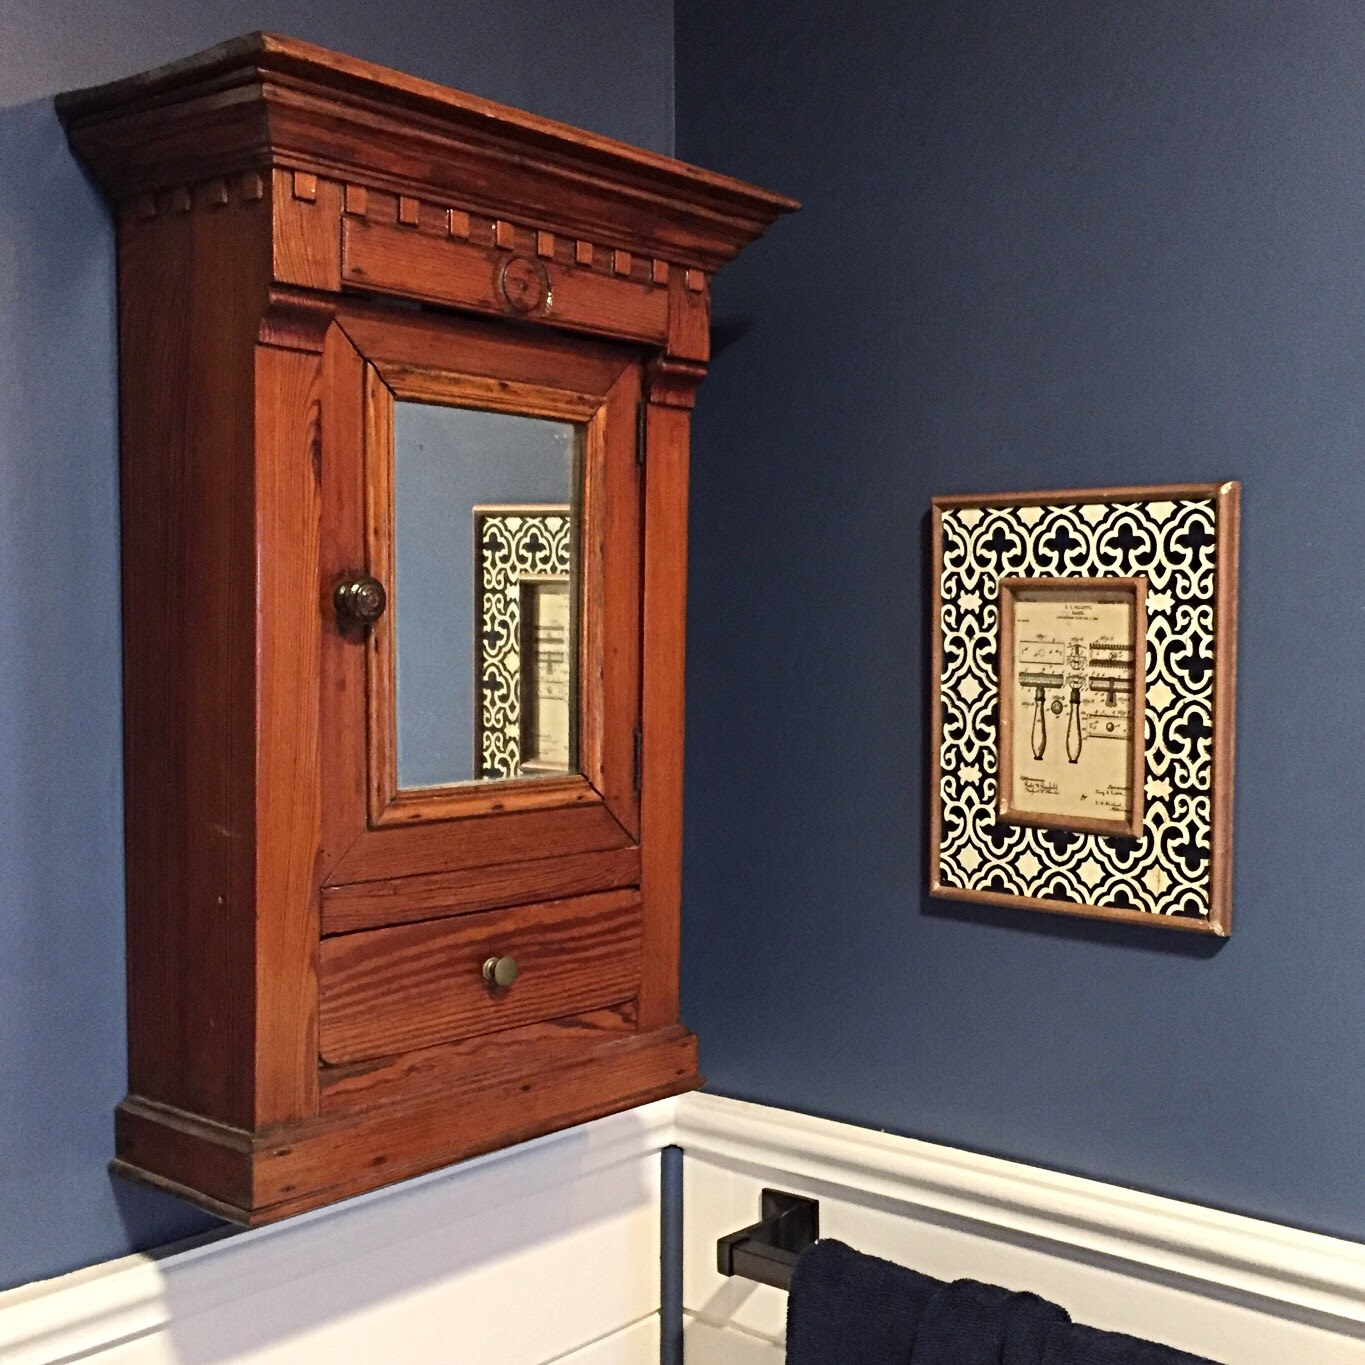 Splurged on this antique medicine cabinet I found on ebay. It's from Belgium. While the mirror wasn't large enough to put it above our sink, it fits nicely on the small wall next to the door and has plenty of space to store medication, etc. To the right, I made these patent prints and put them in some frames I found on super sale. There's a couple of them throughout the bathroom.